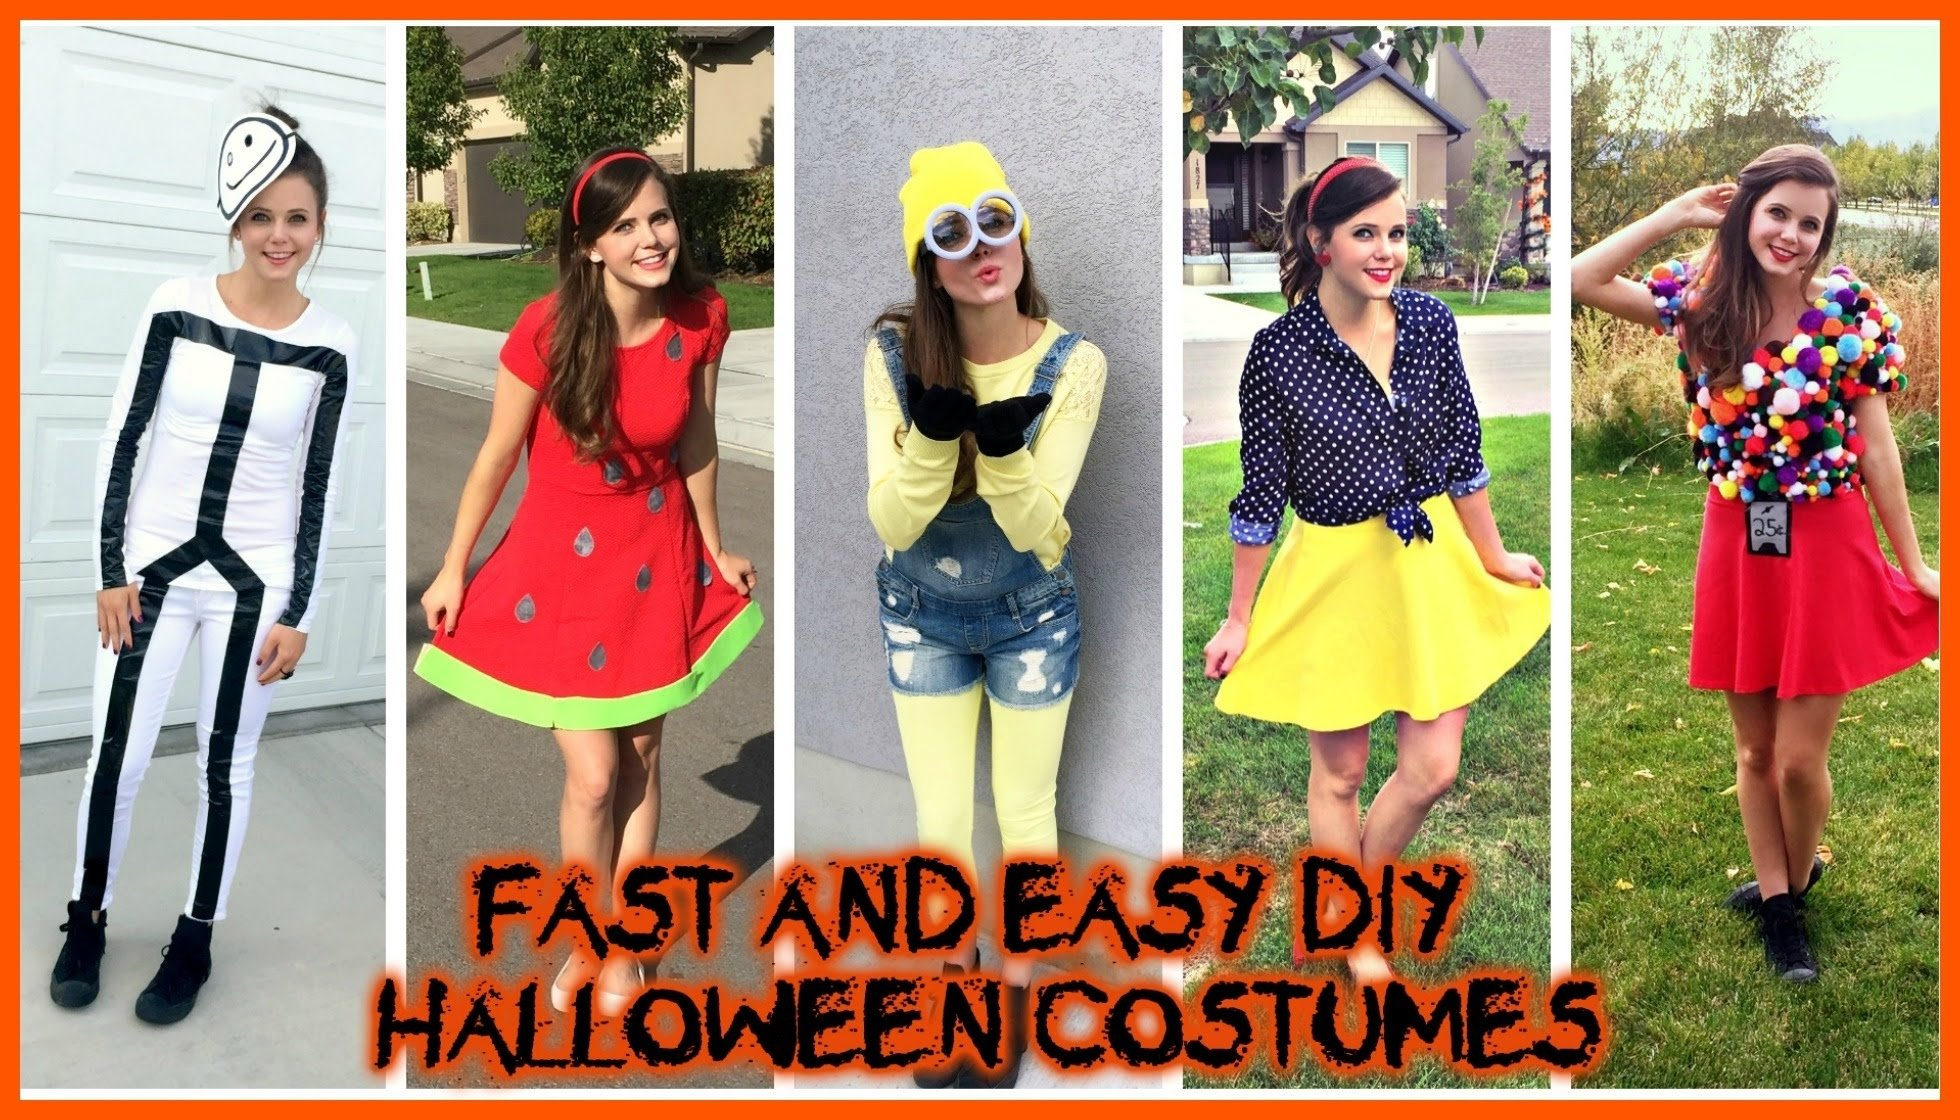 10 Attractive Last Minute Homemade Halloween Costume Ideas diy halloween costumes super easy cheap last minute ideas tiffany 9 2020